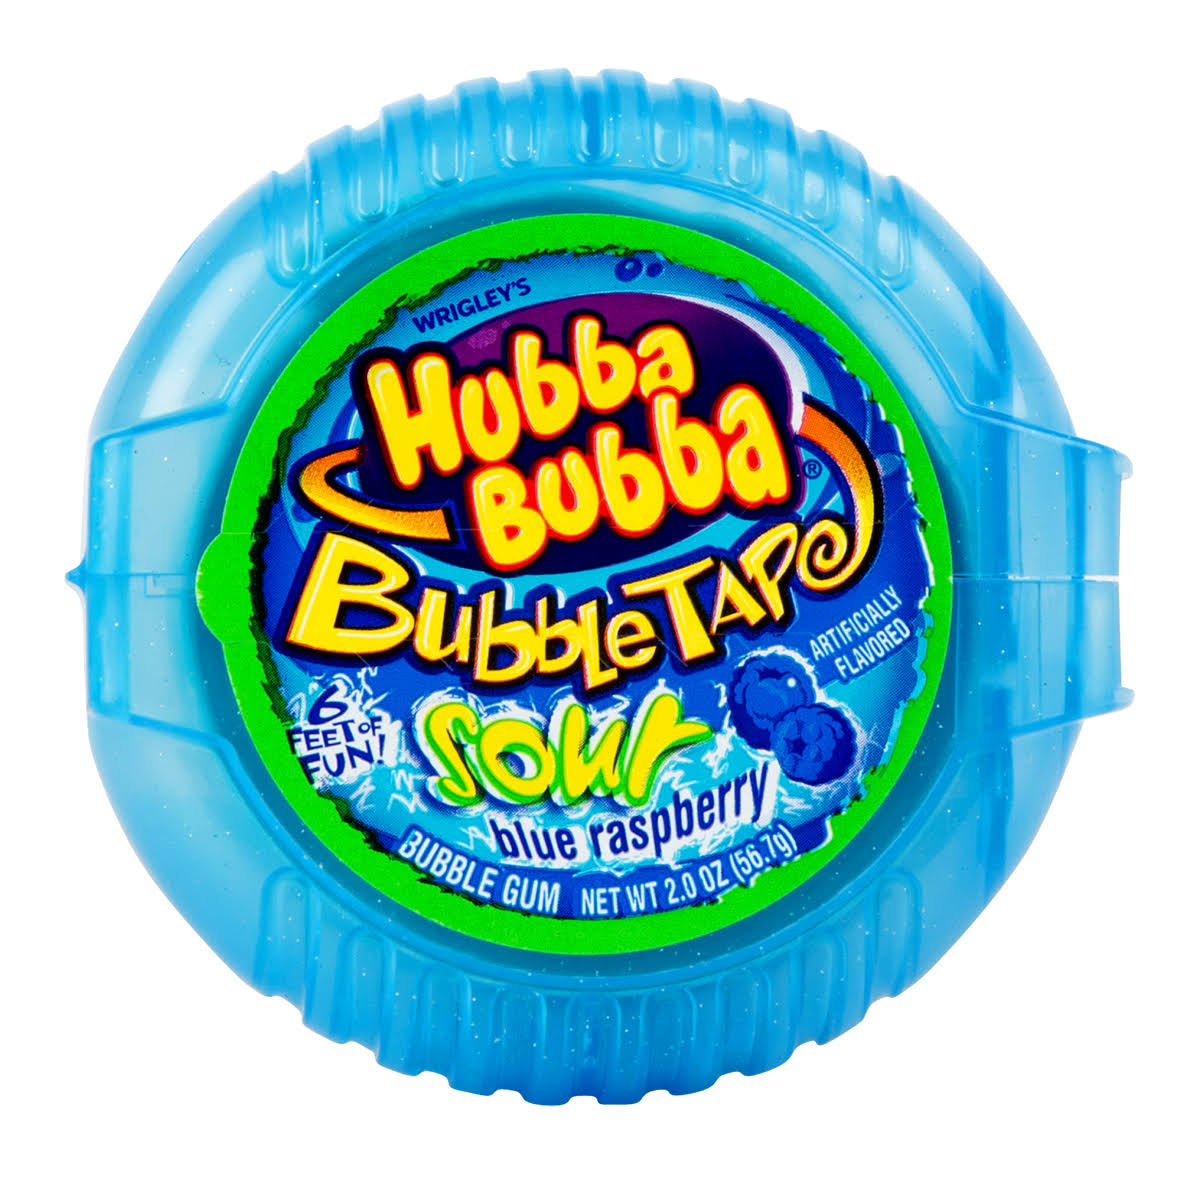 Wrigley's Hubba Bubba Bubble Tape Sour - Blue Raspberry